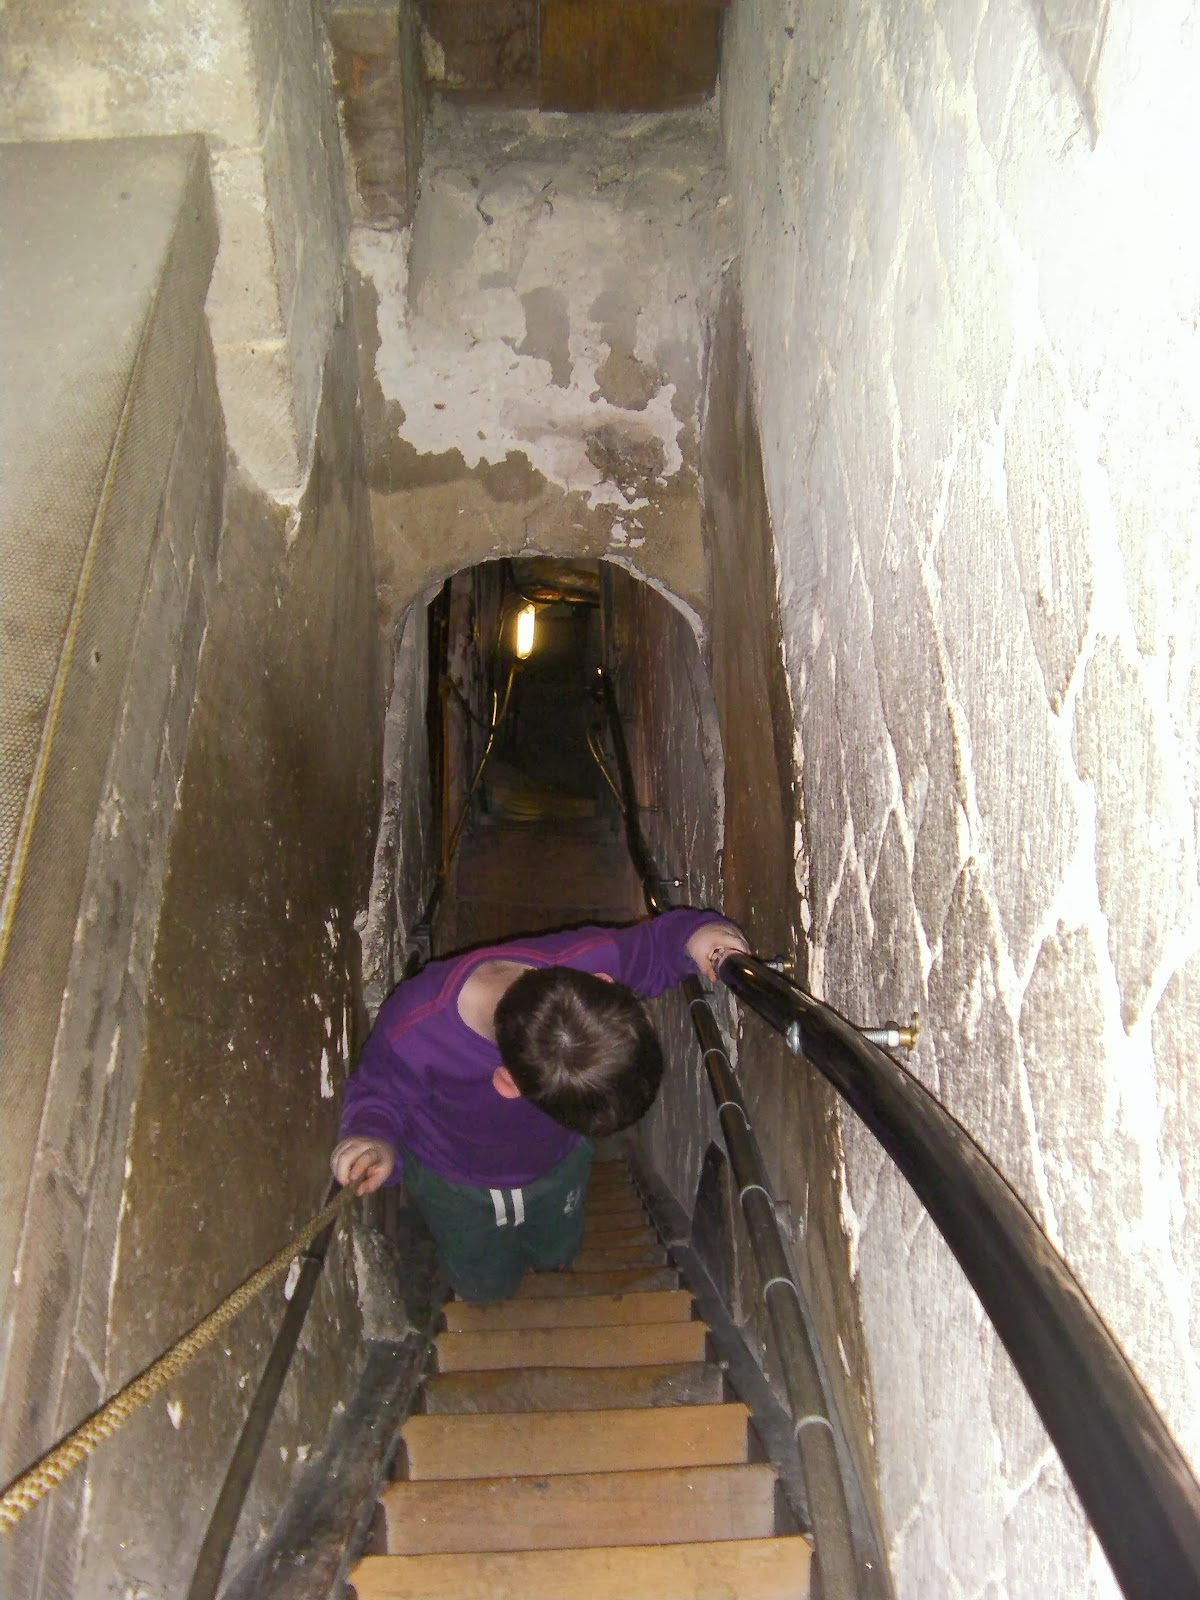 have to go backwards down narrow medieval staircase